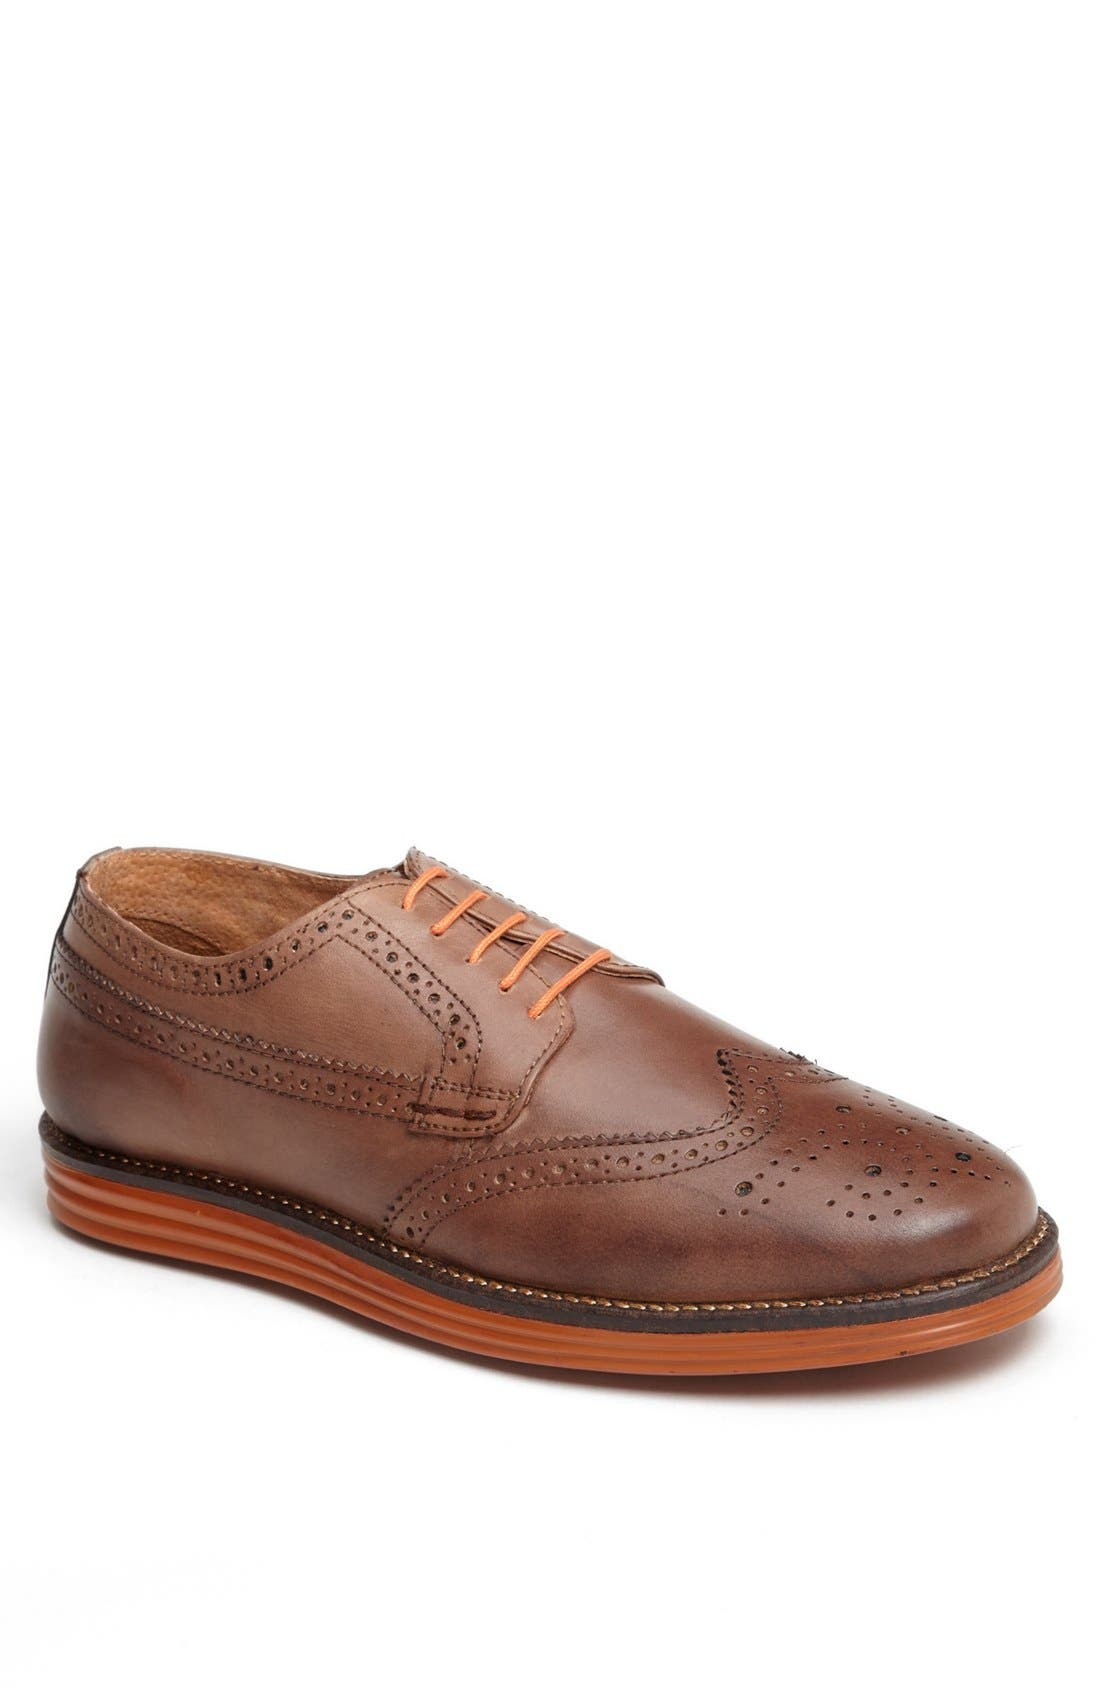 Main Image - Ben Sherman 'Zito' Wingtip (Men)